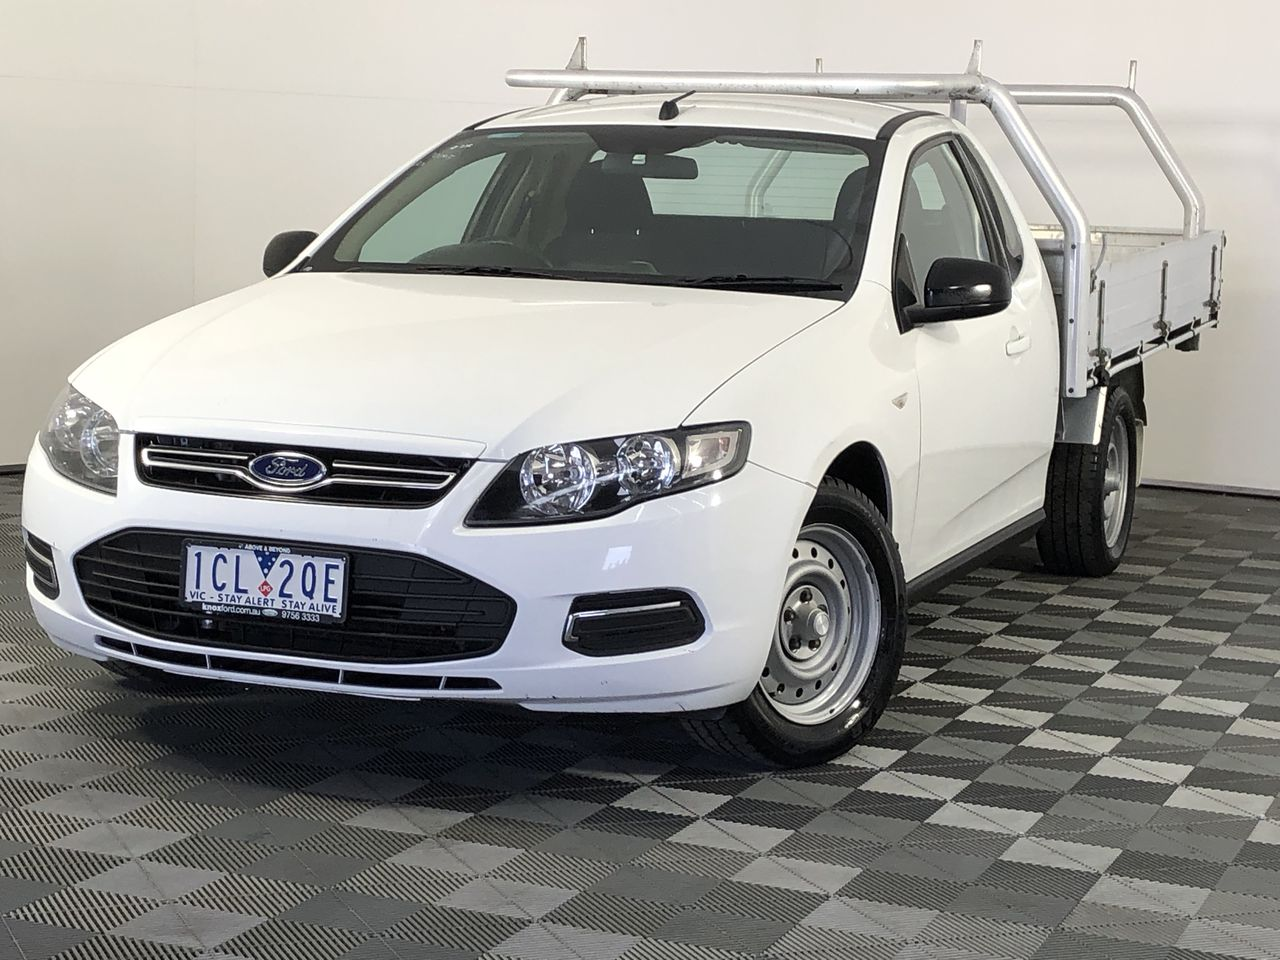 2014 Ford Falcon (LPI) FG II Automatic Cab Chassis